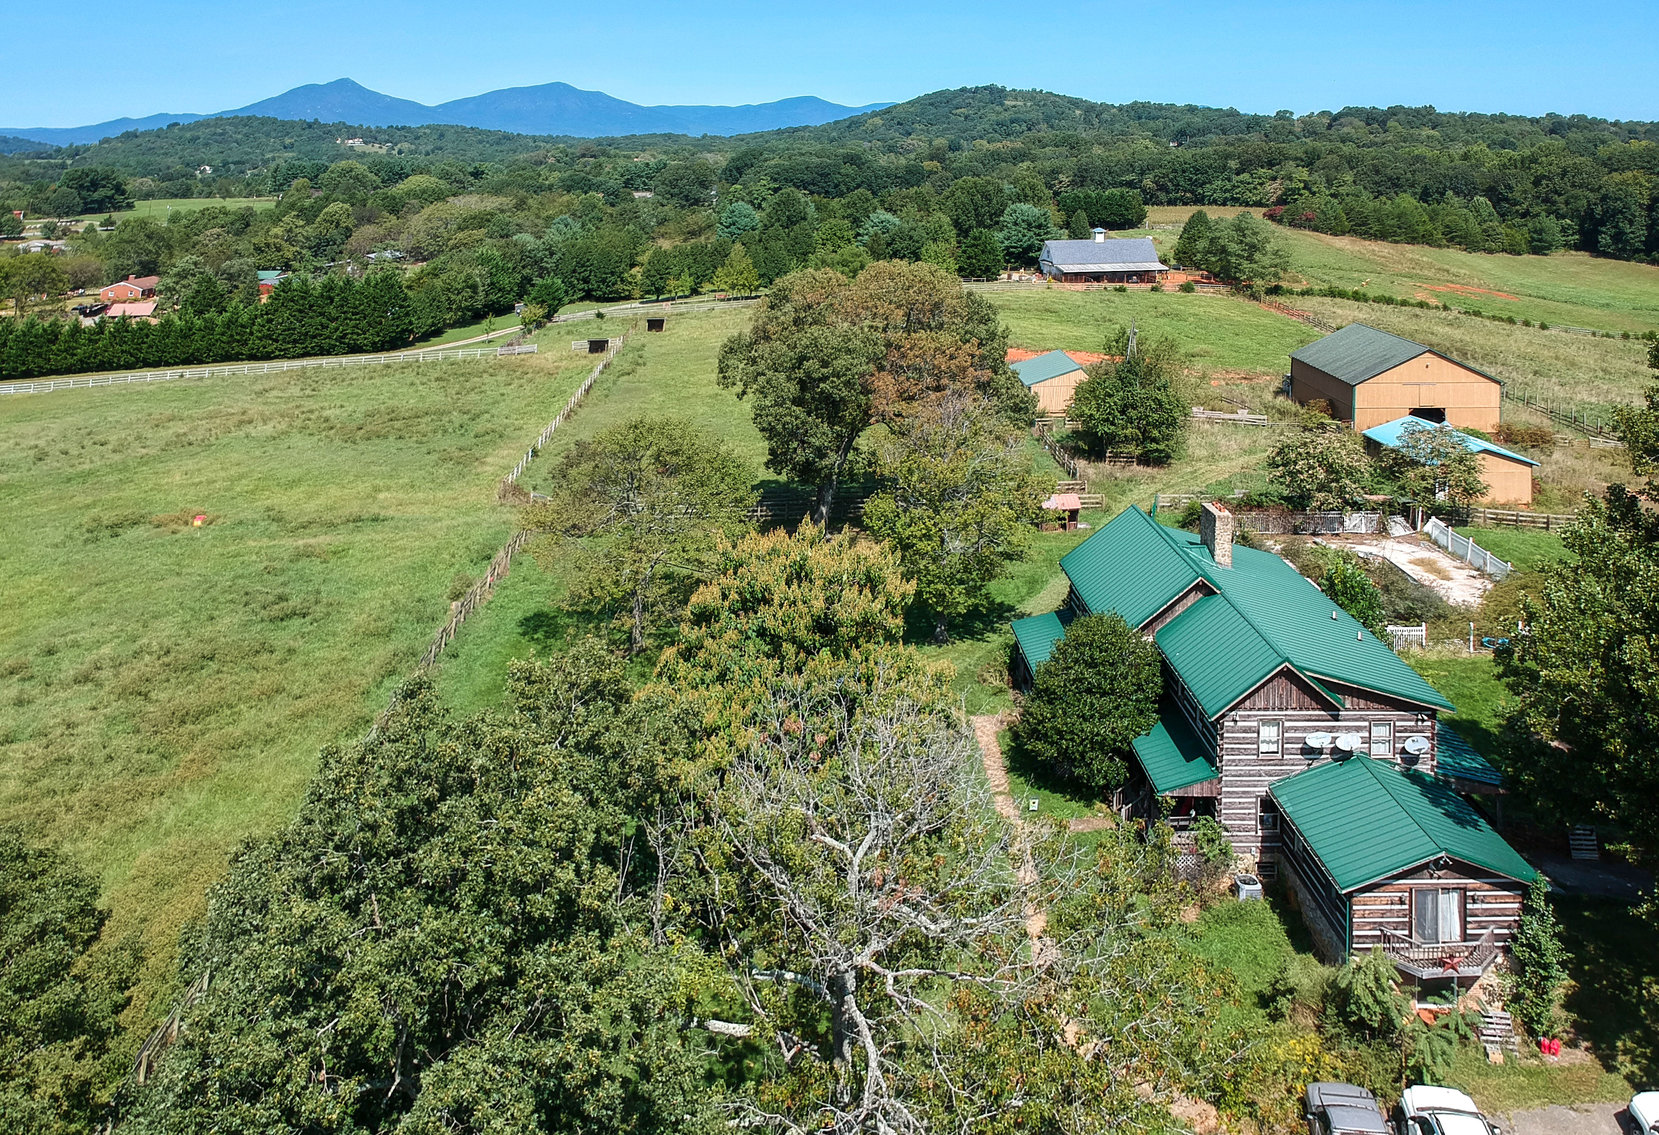 33 Acre Farm with Log Home & 3 Barns